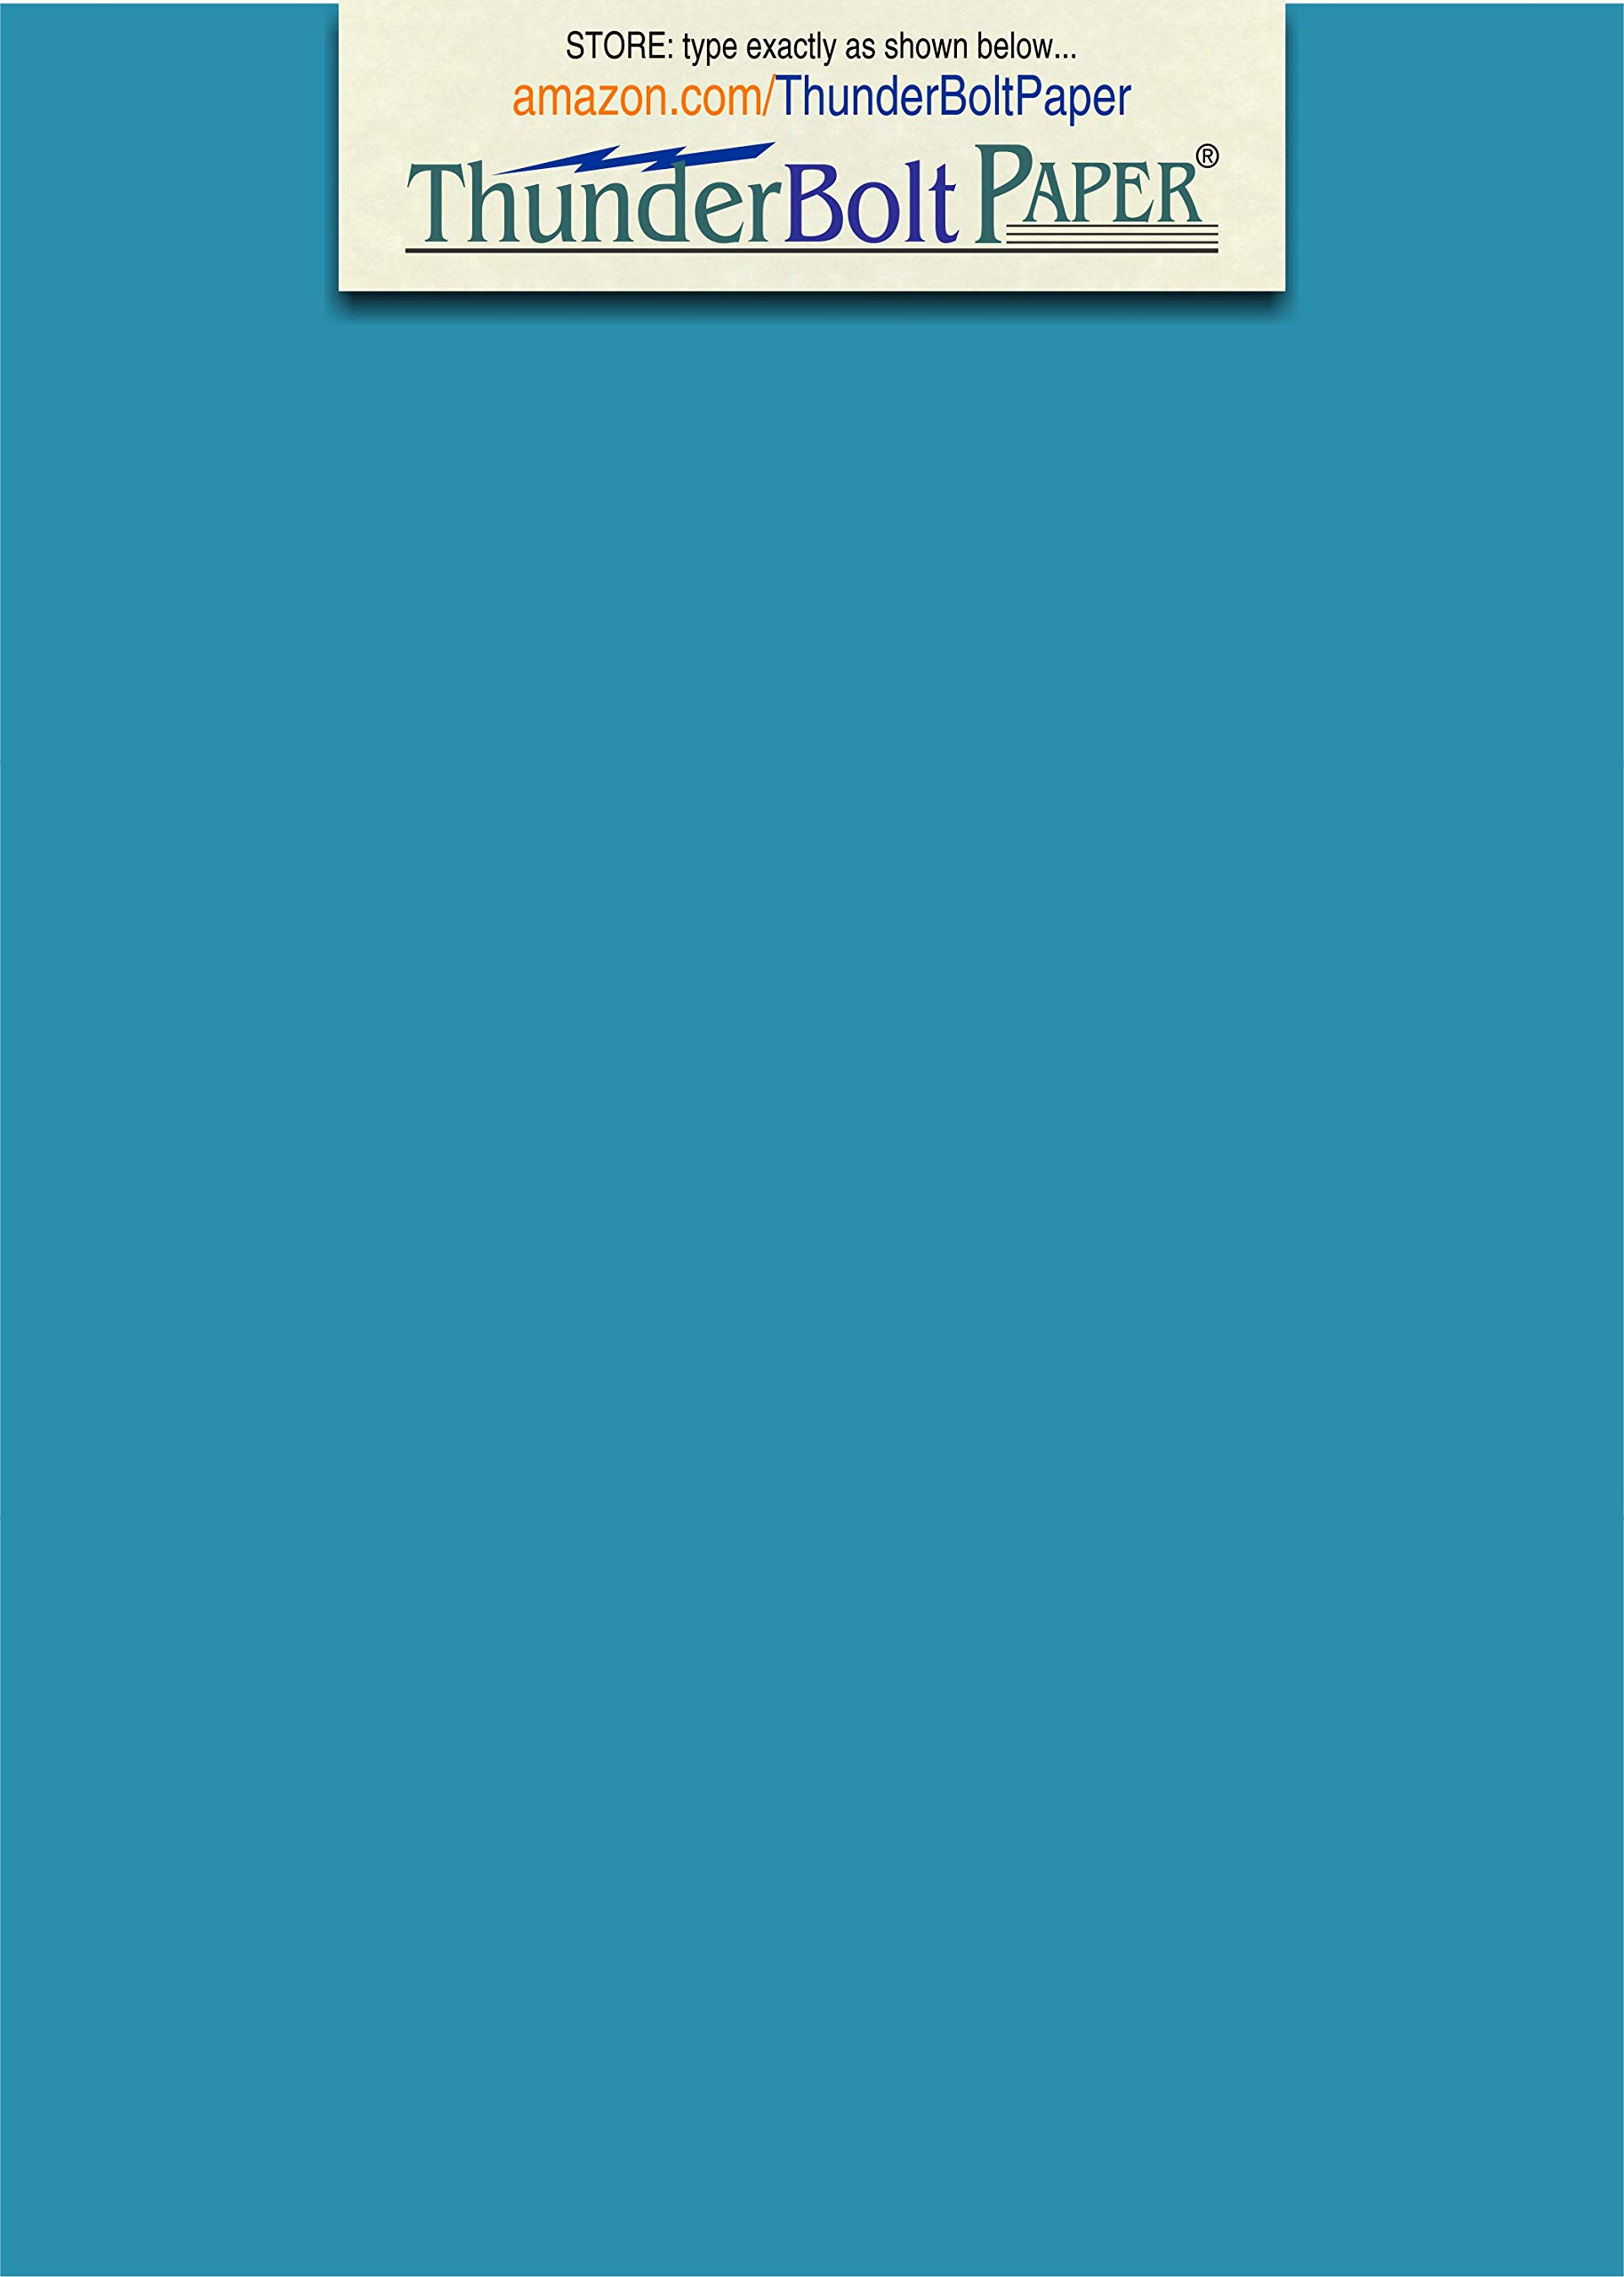 300 Bright Aqua Blue Color 65# Cover/Card Paper Sheets - 5.5 X 8.5 Inches Half Letter or Statement Size - 65 lb/pound Light Weight Cardstock - Smooth Surface